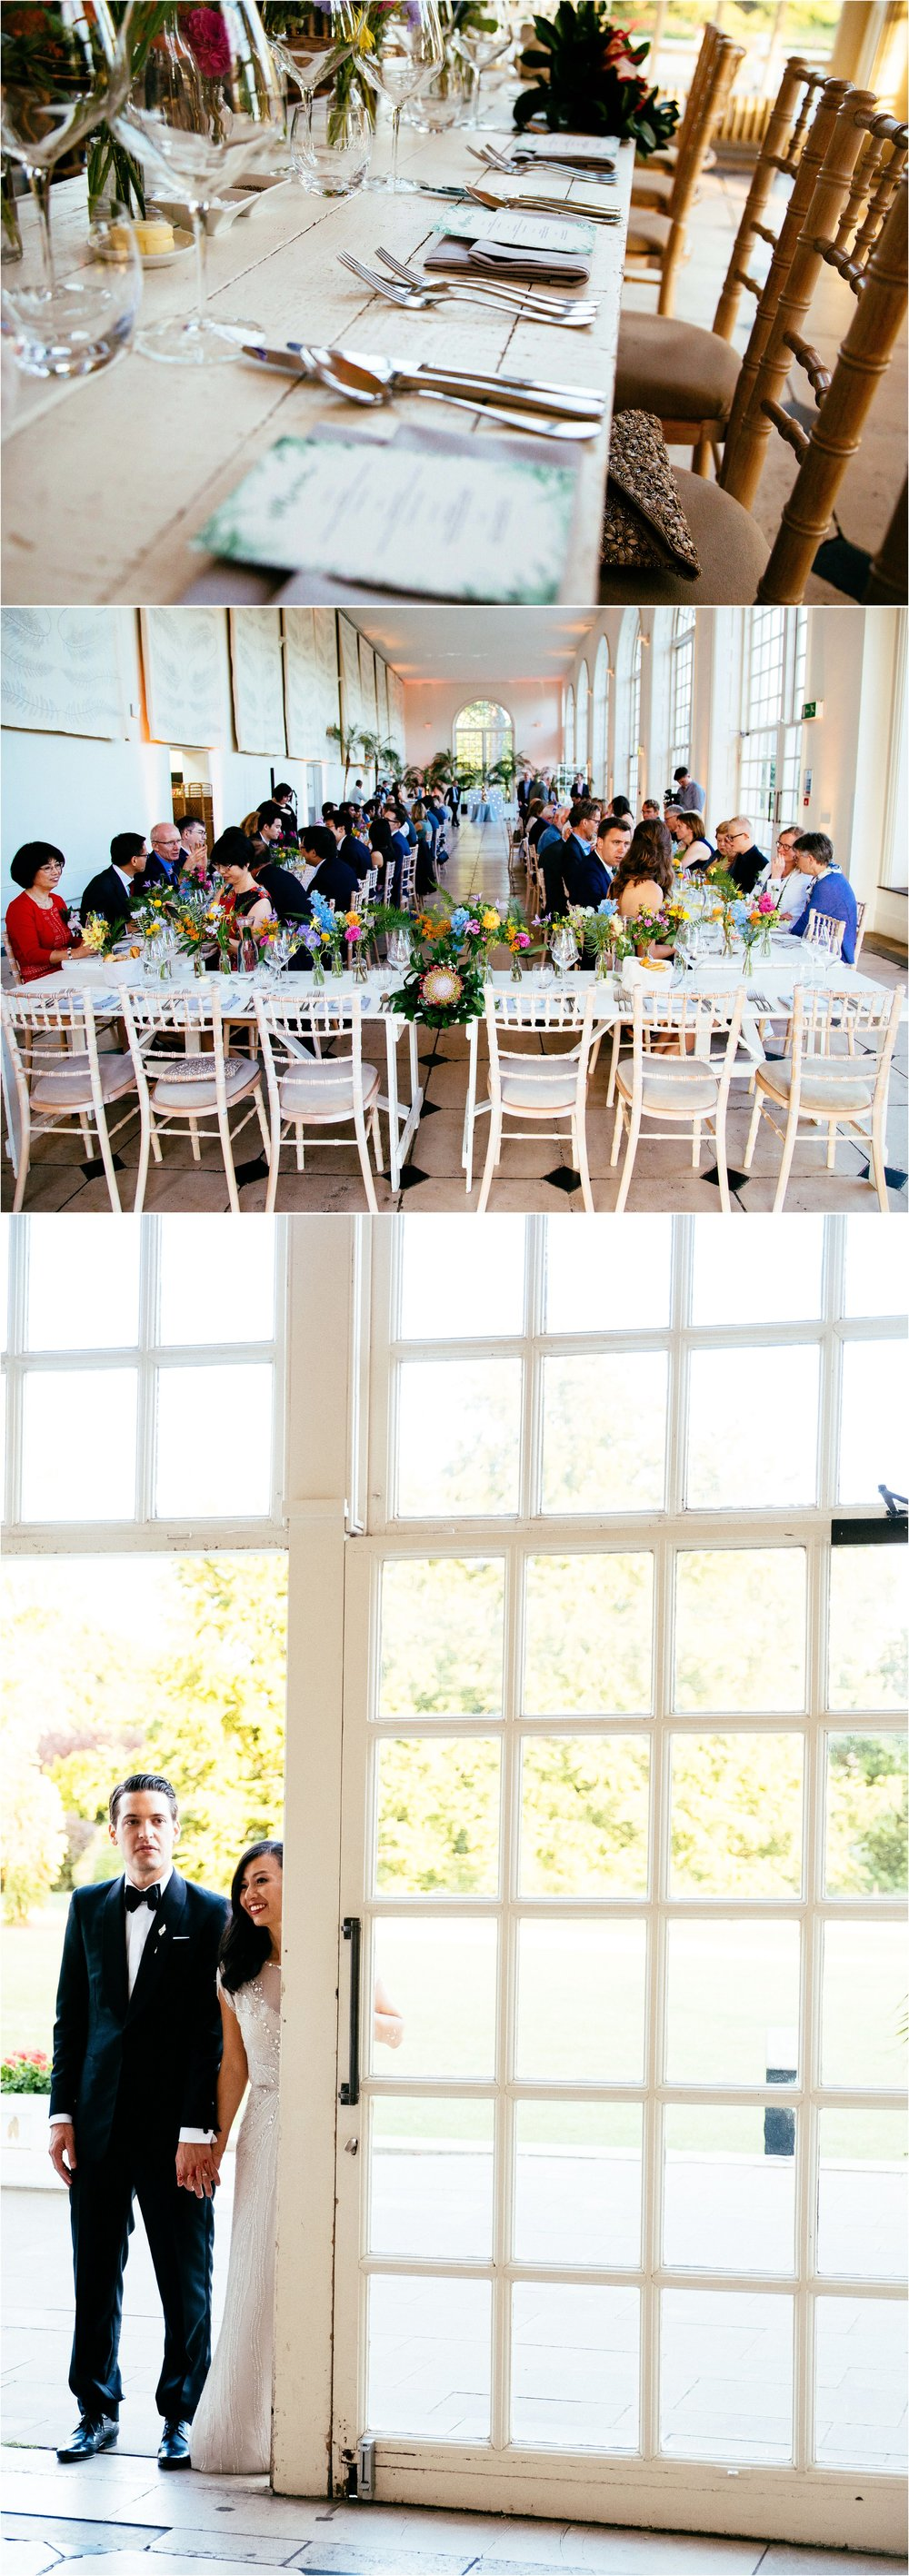 Kew Garden wedding photographer_0240.jpg